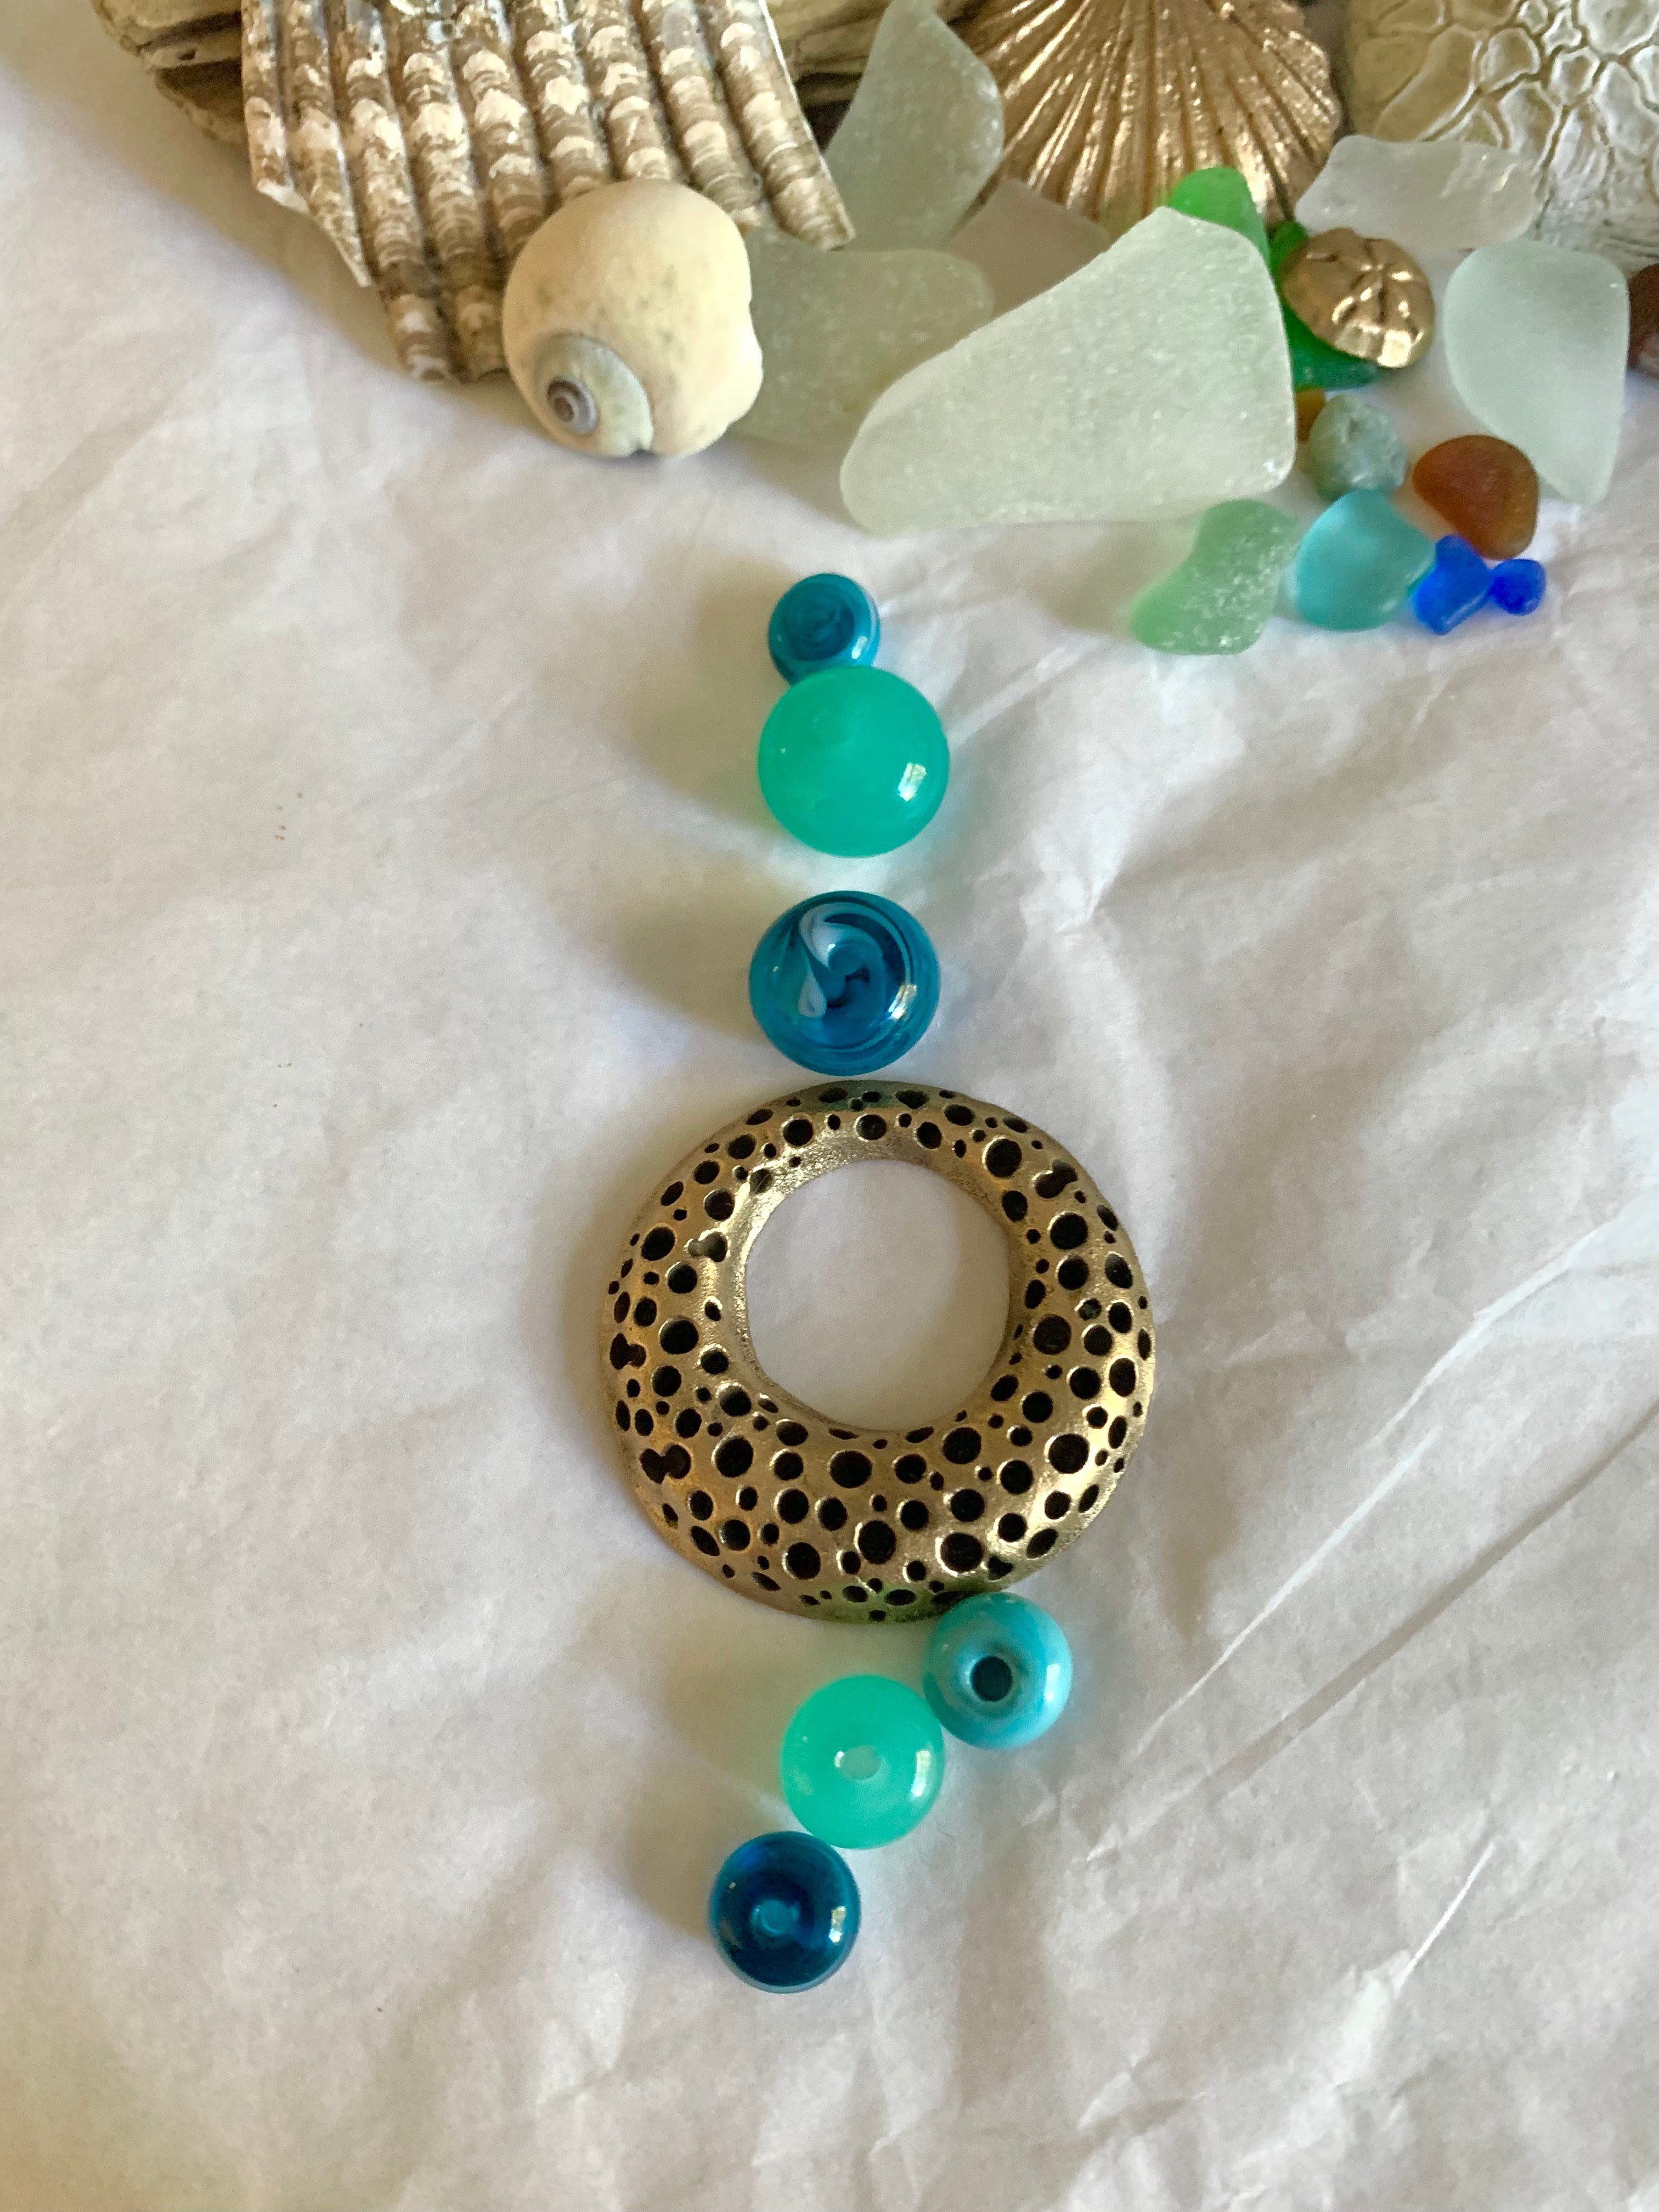 New necklace in progress